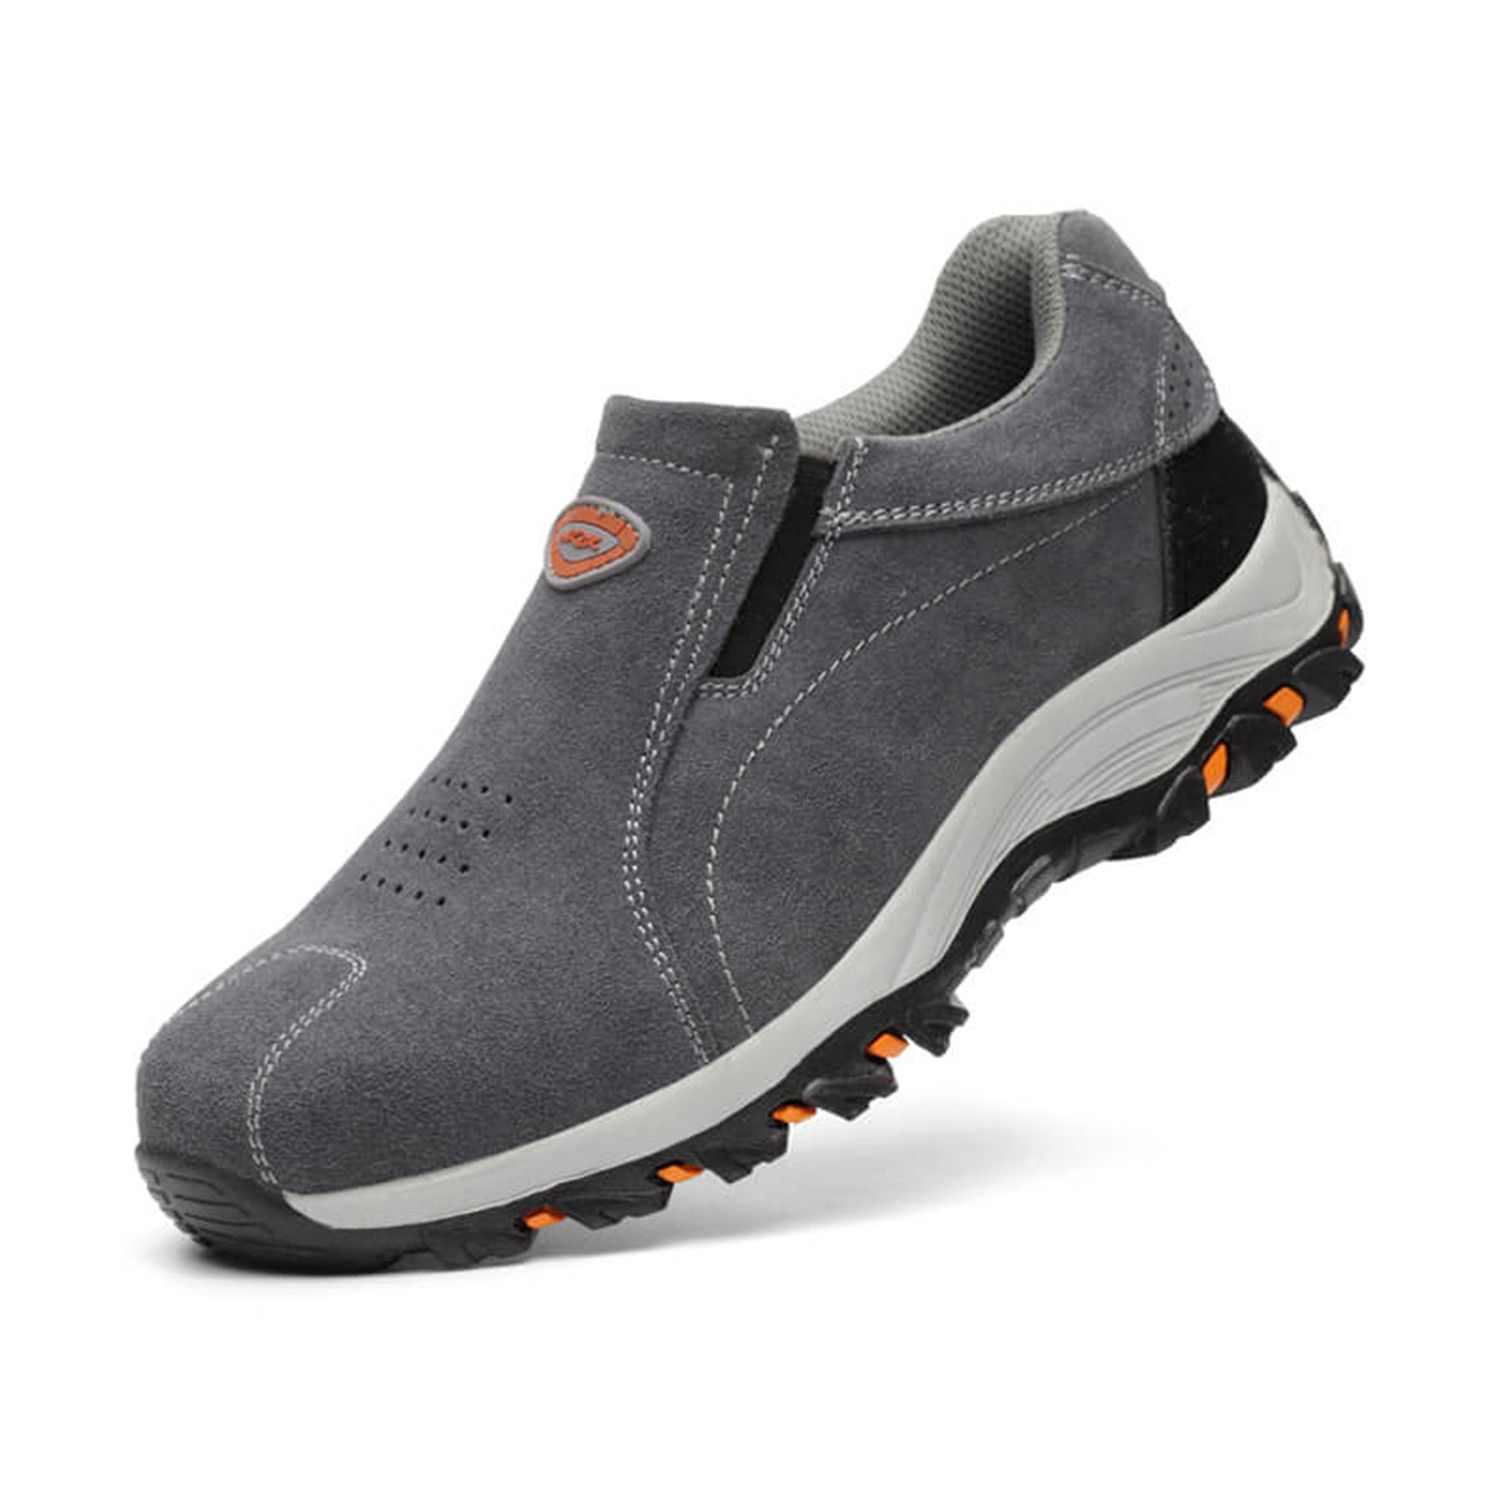 Aox // Gray | Water resistant shoes